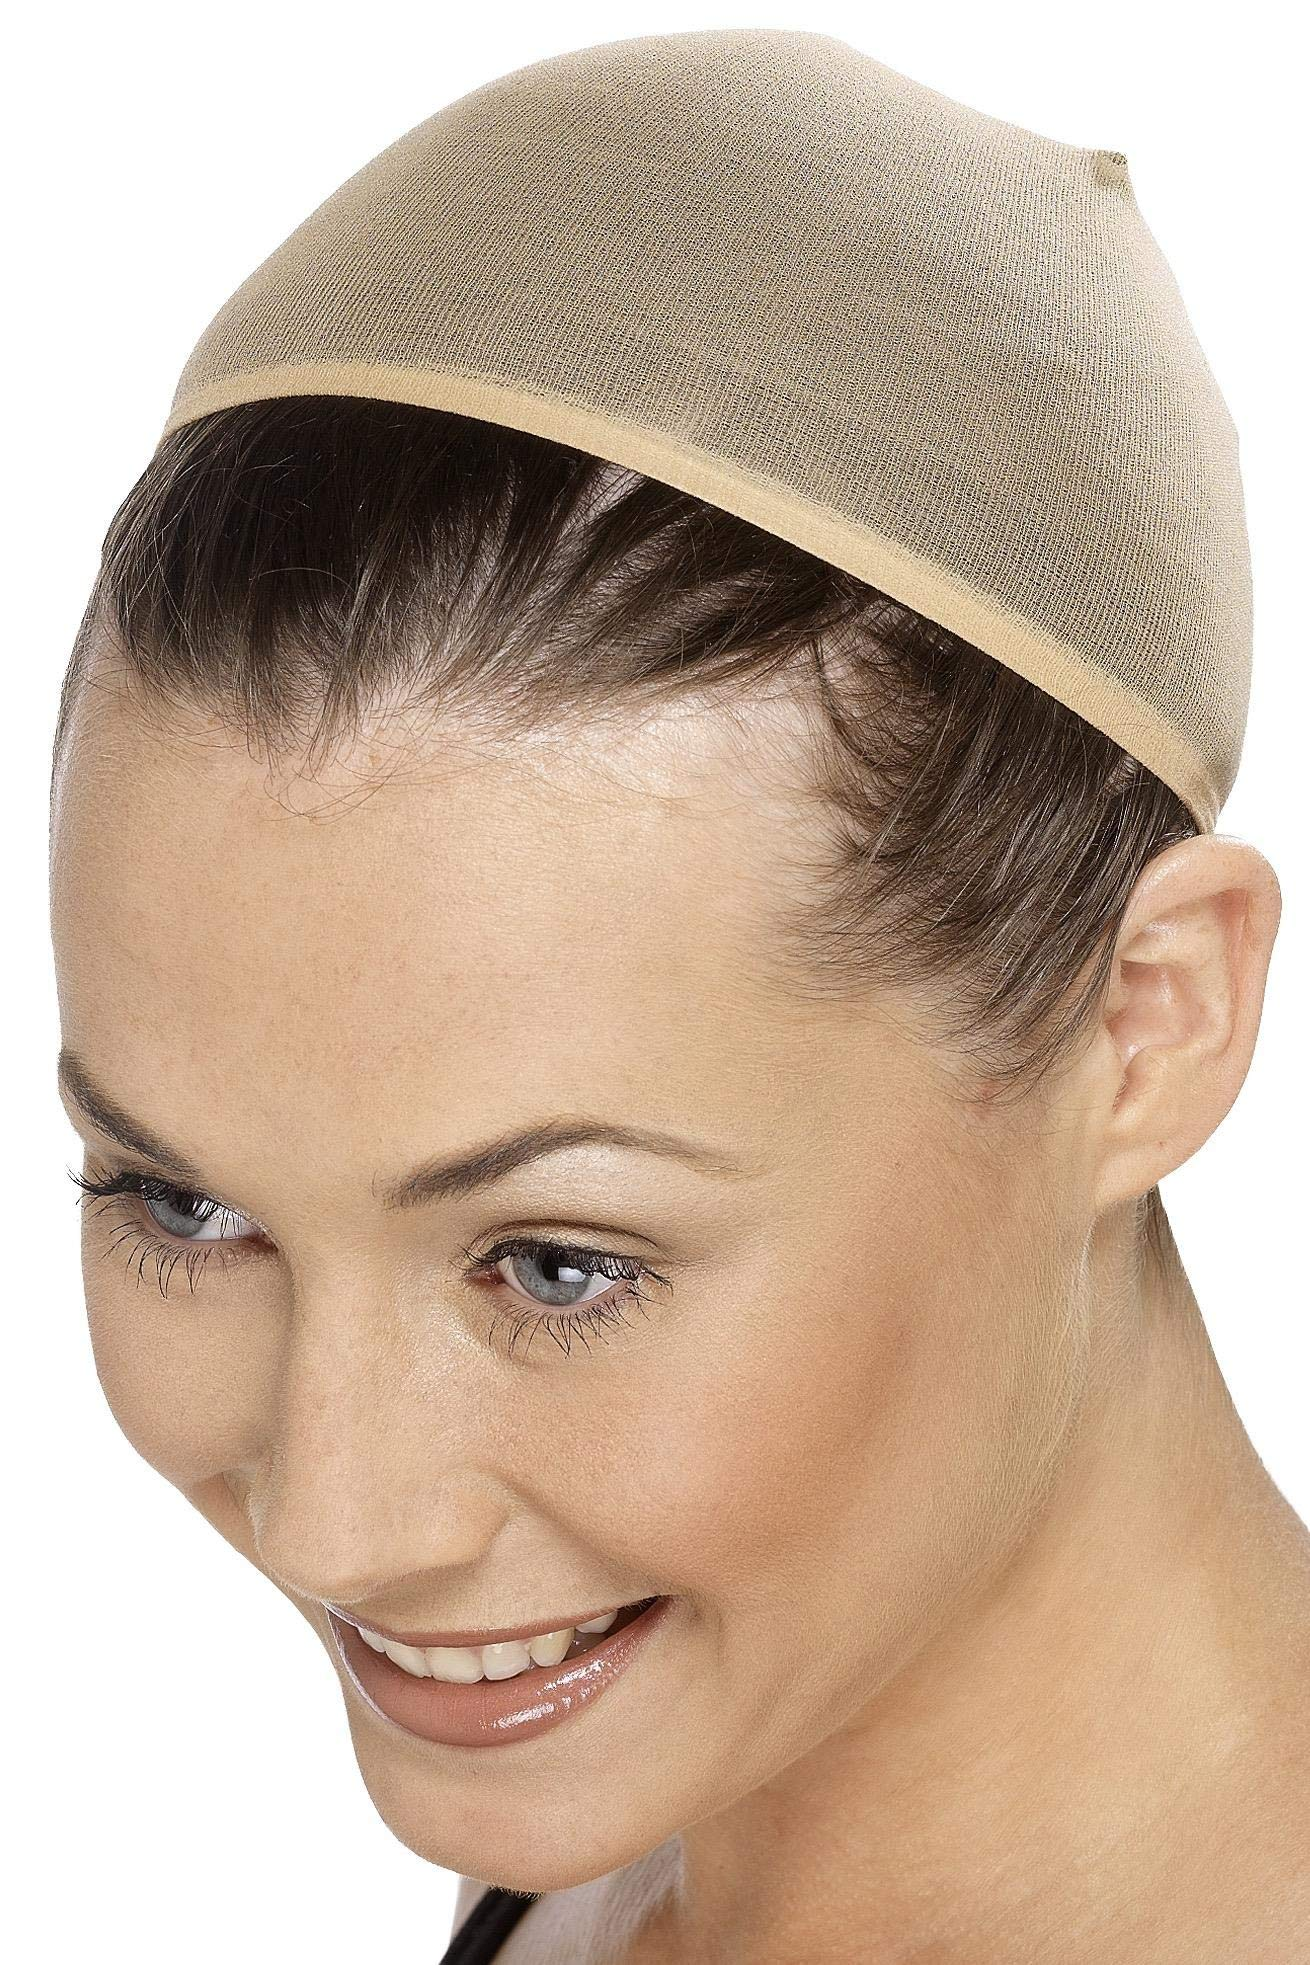 Smiffys Adult Unisex Wig Cap, Nude, One Size, 20136